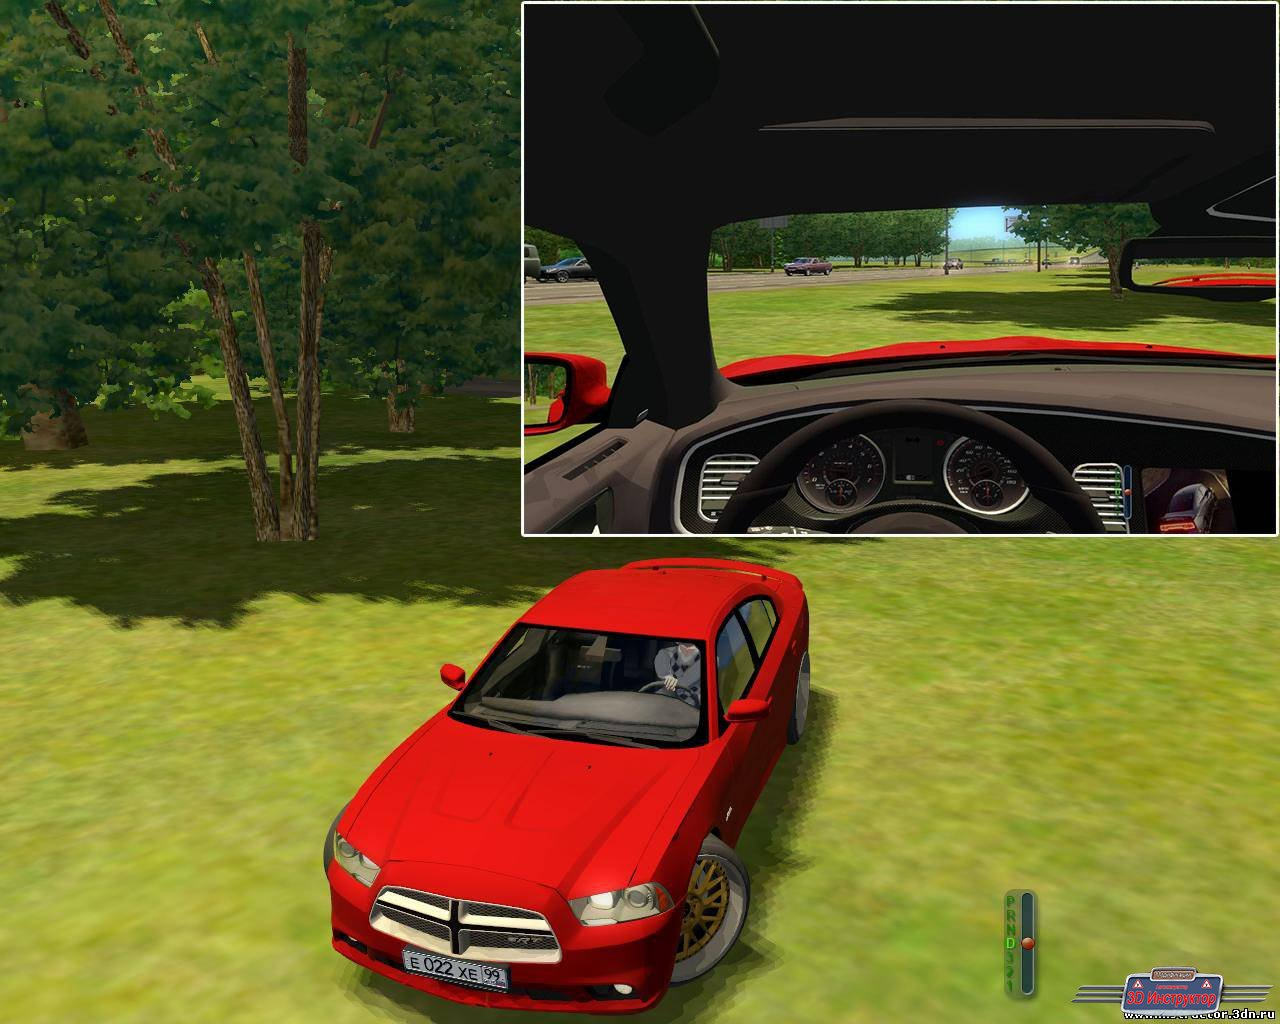 Dodge Charger srt 8 для 3D Инструктор [2.2.7]